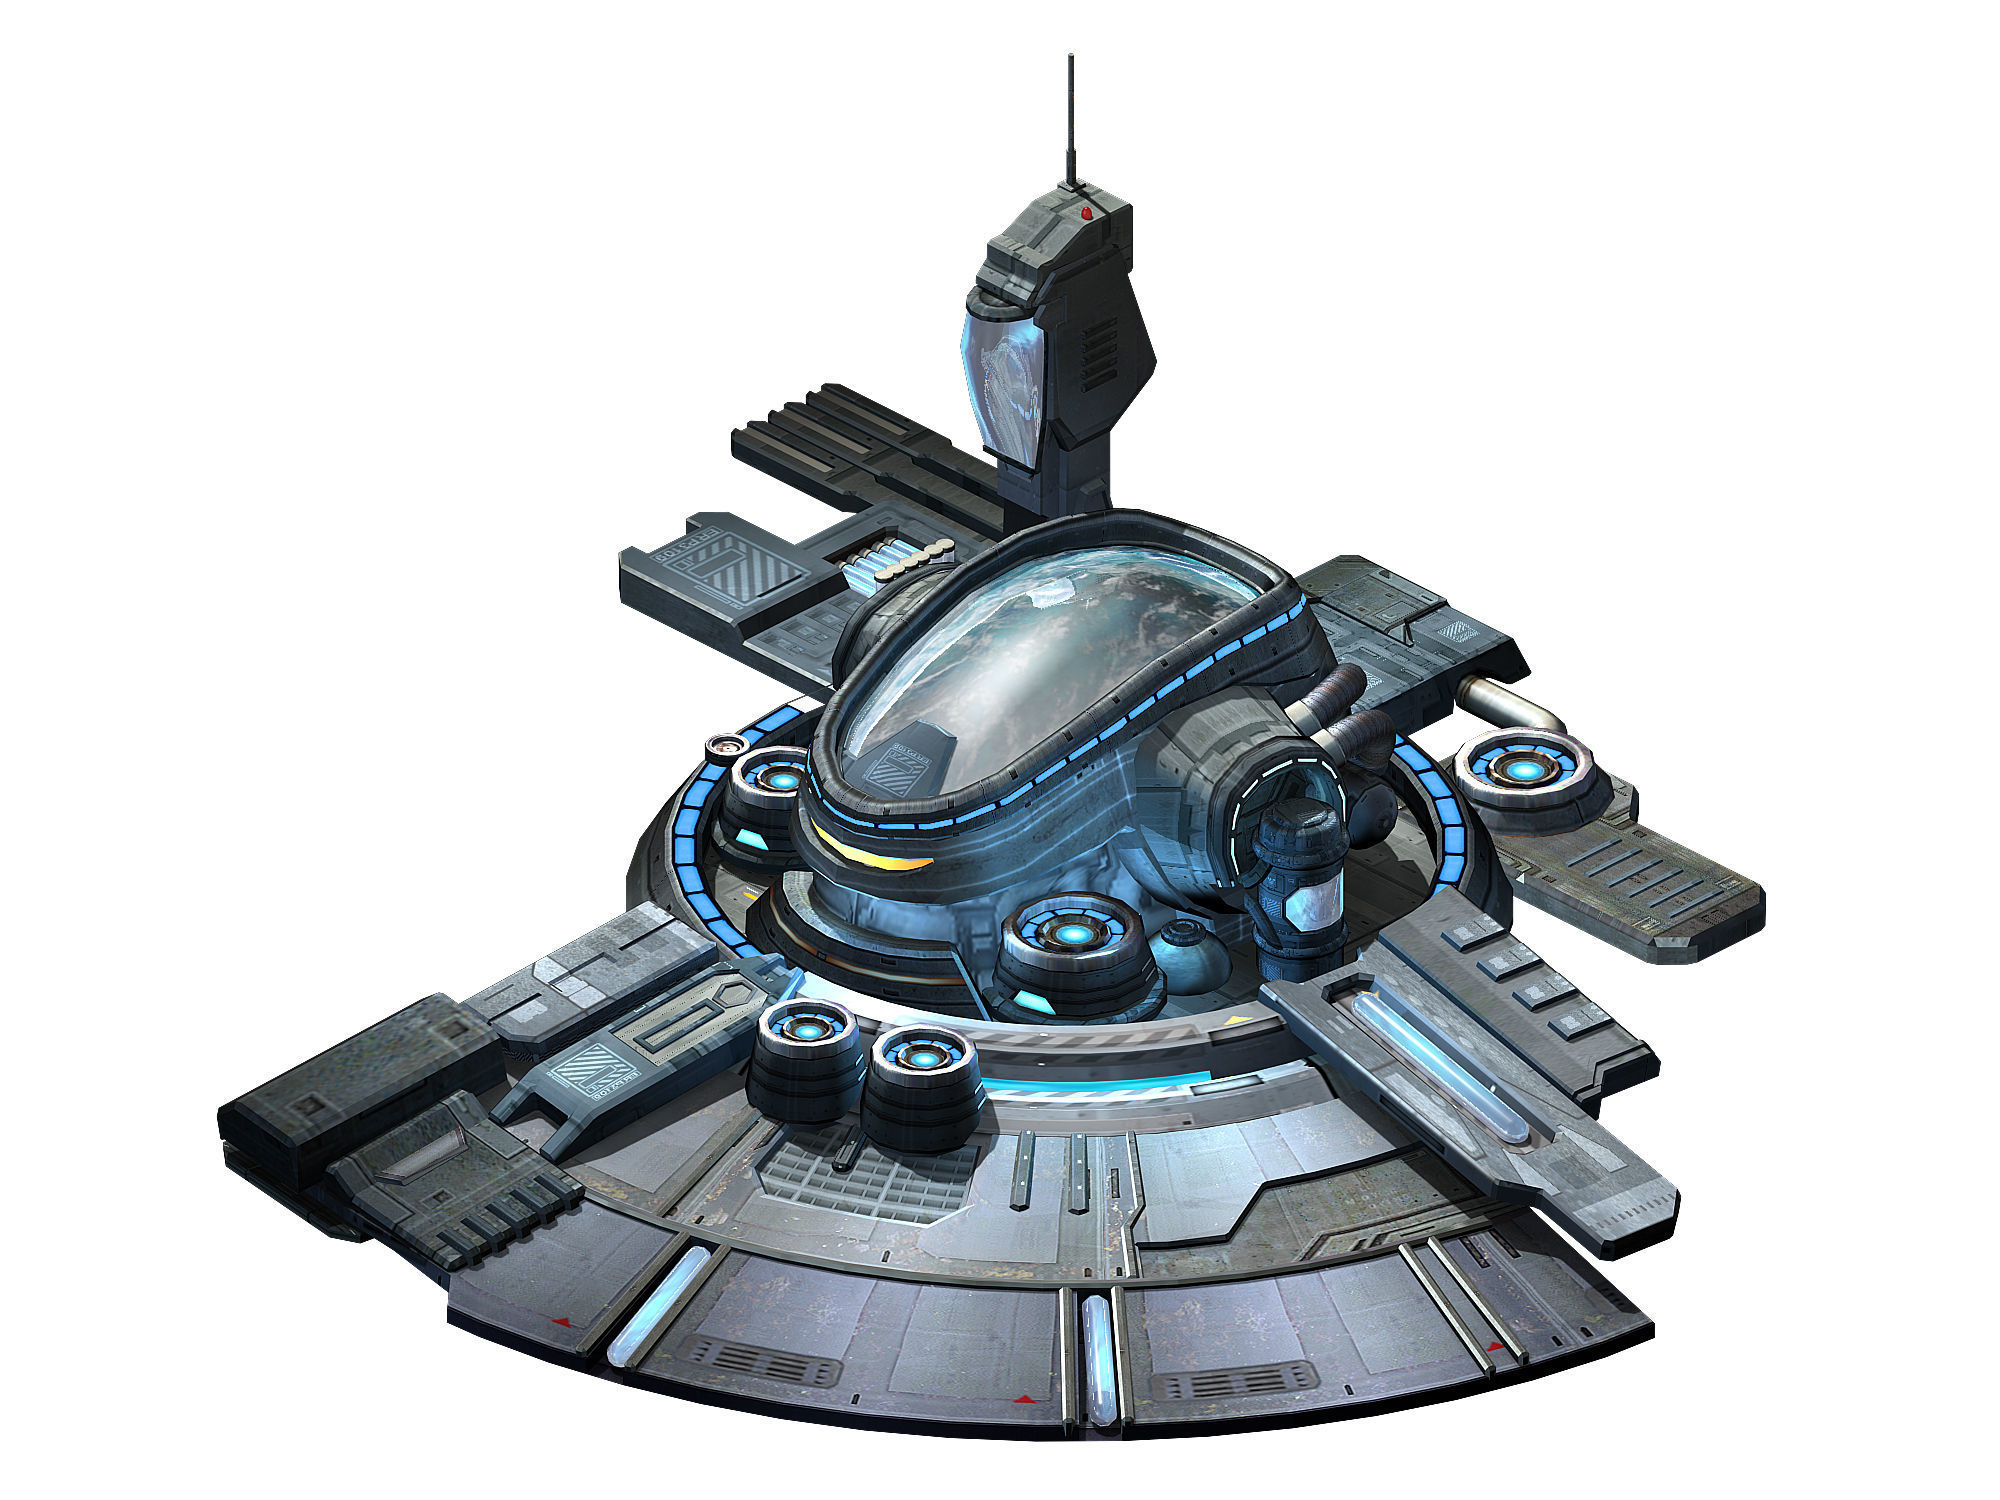 Machinery - Spacecraft - Functional Objects 01